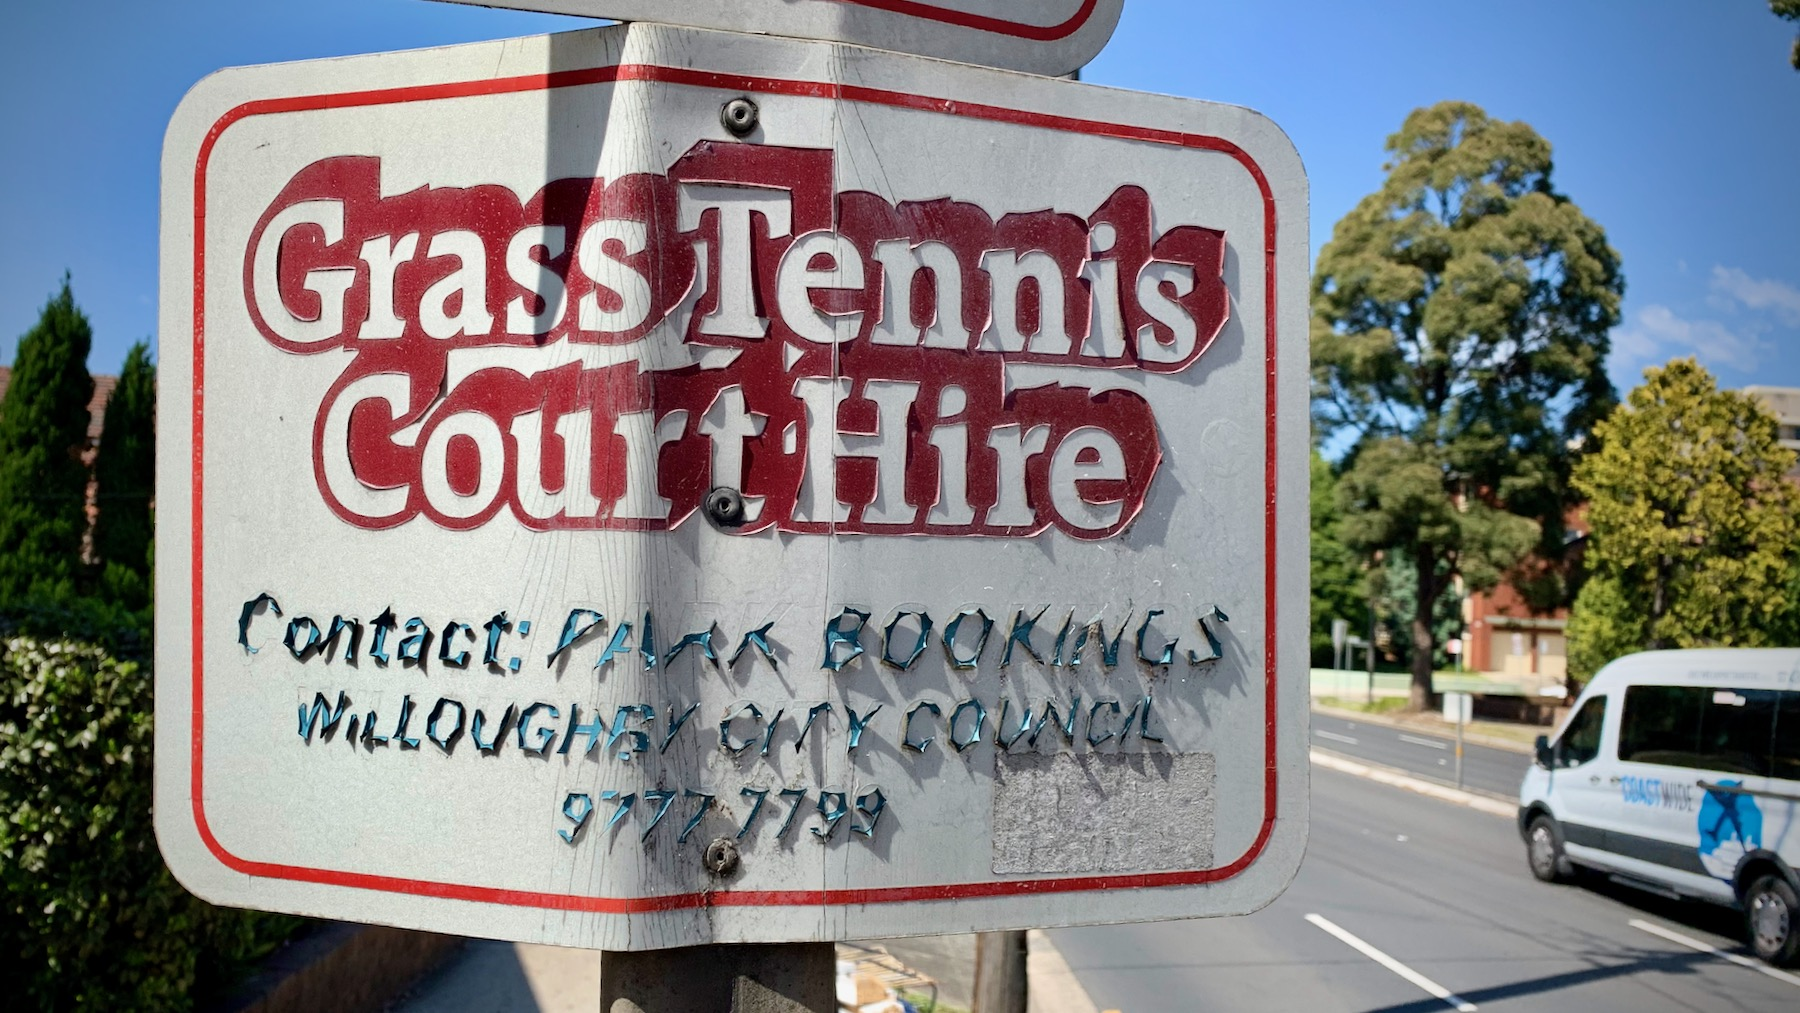 Grass Tennis Court Hire